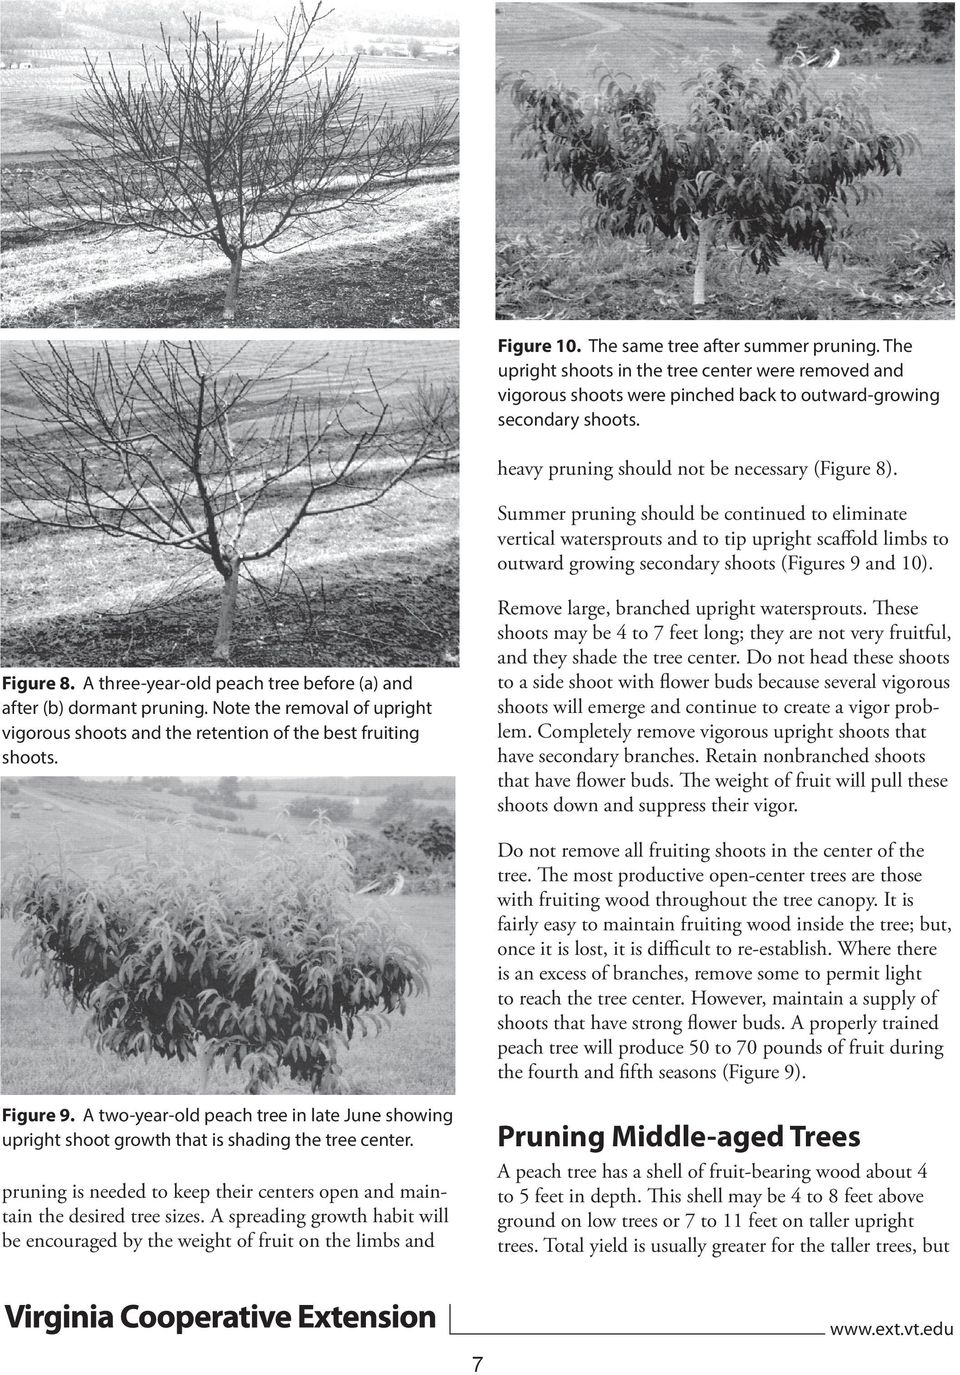 Summer pruning should be continued to eliminate vertical watersprouts and to tip upright scaffold limbs to outward growing secondary shoots (Figures 9 and 10).